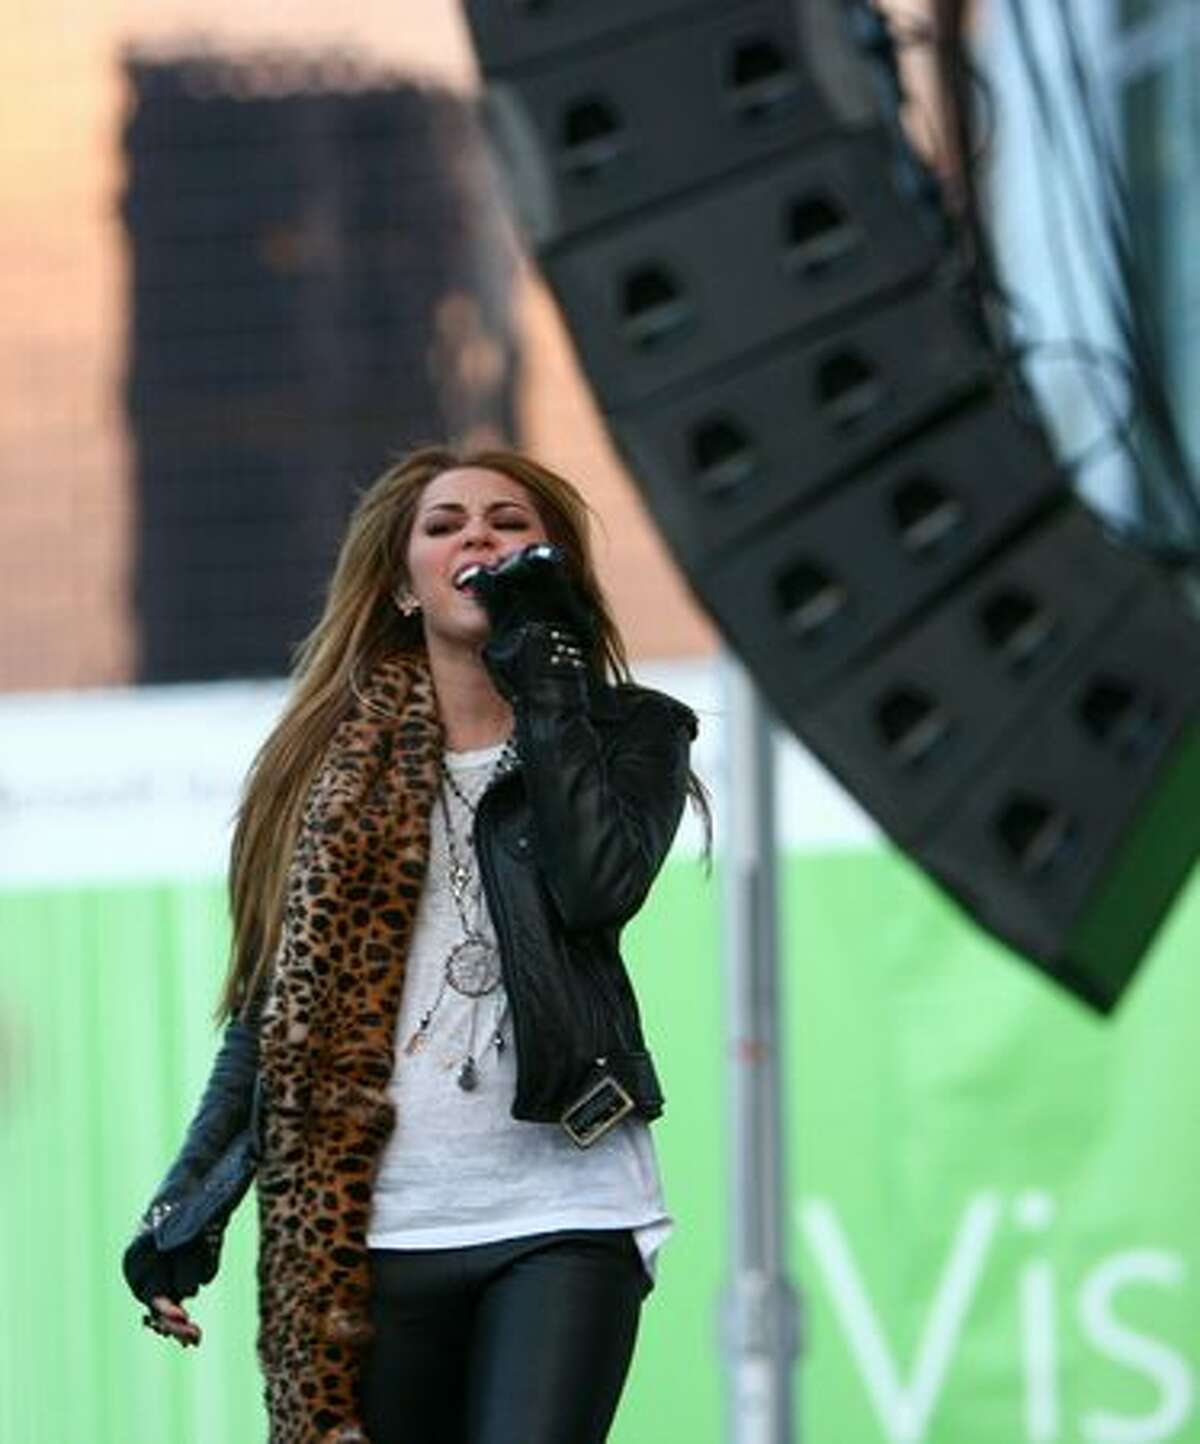 Pop singer and actress Miley Cyrus performs in front of thousands of fans in downtown Bellevue.